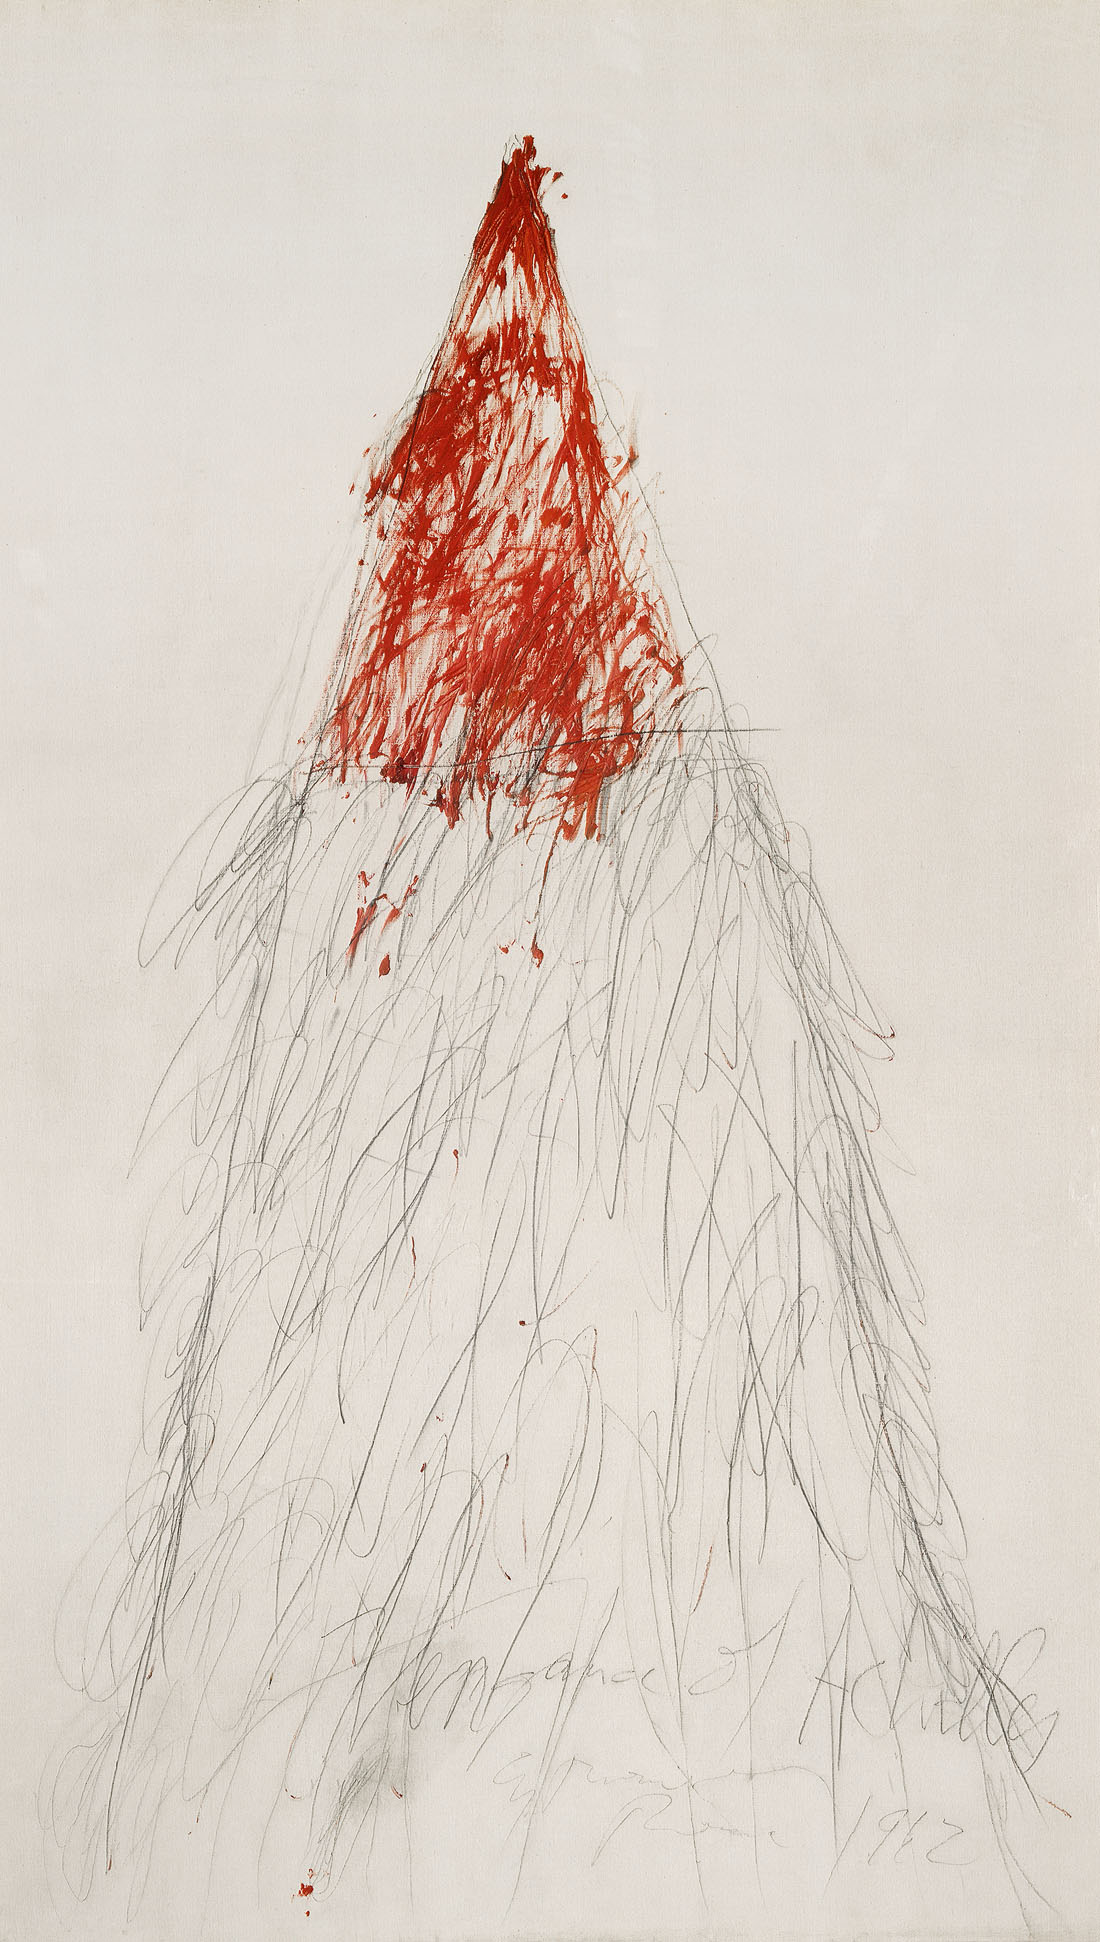 roland barthes essay on cy twombly (from an essay on twombly entitled non multa sed multim by roland barthes, 1979) sadly, cy twombly died in july 2011.